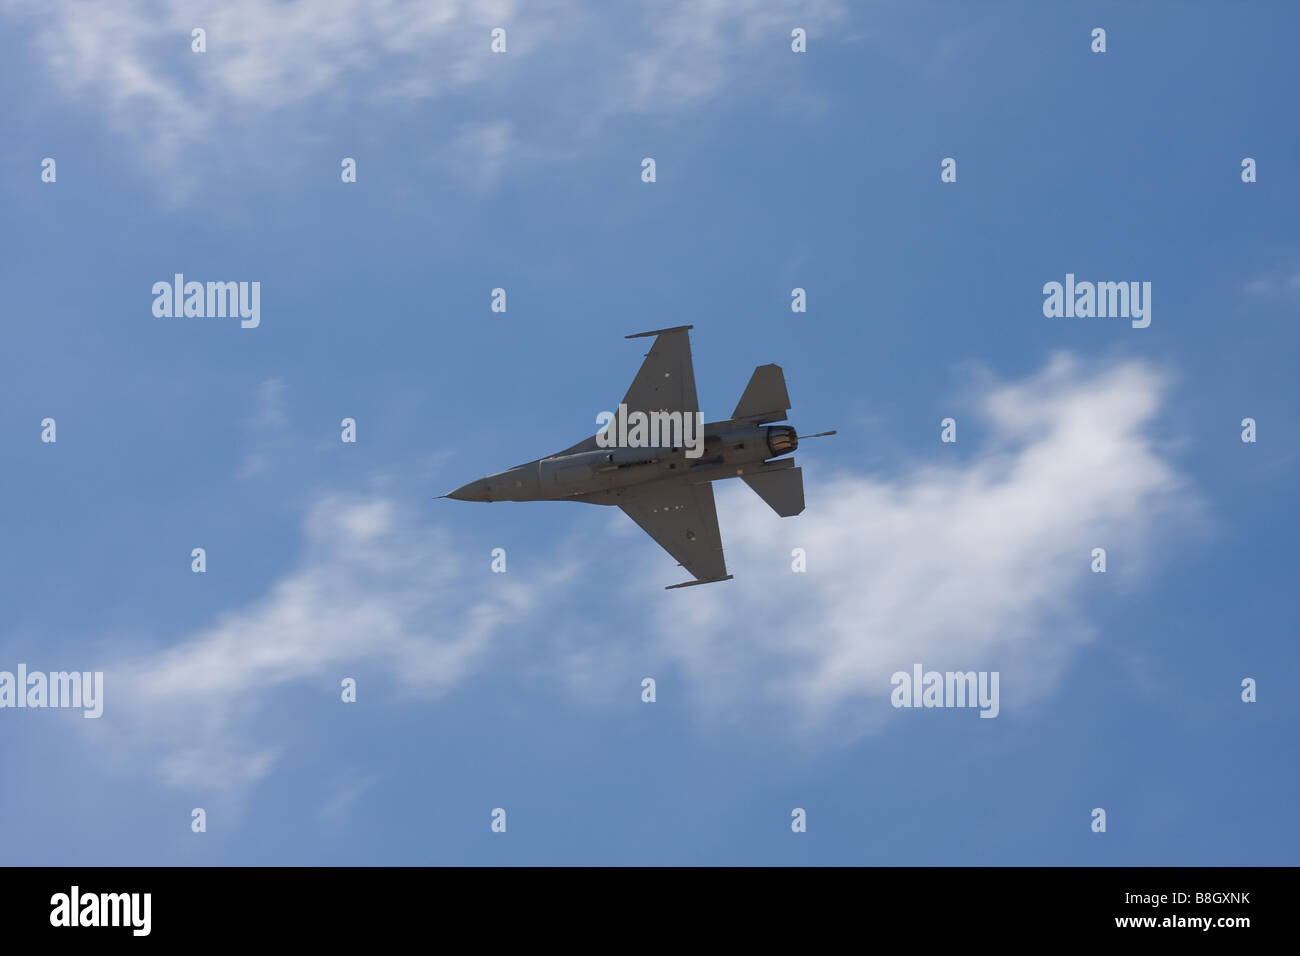 F-16 Fighting Falcon Banque D'Images